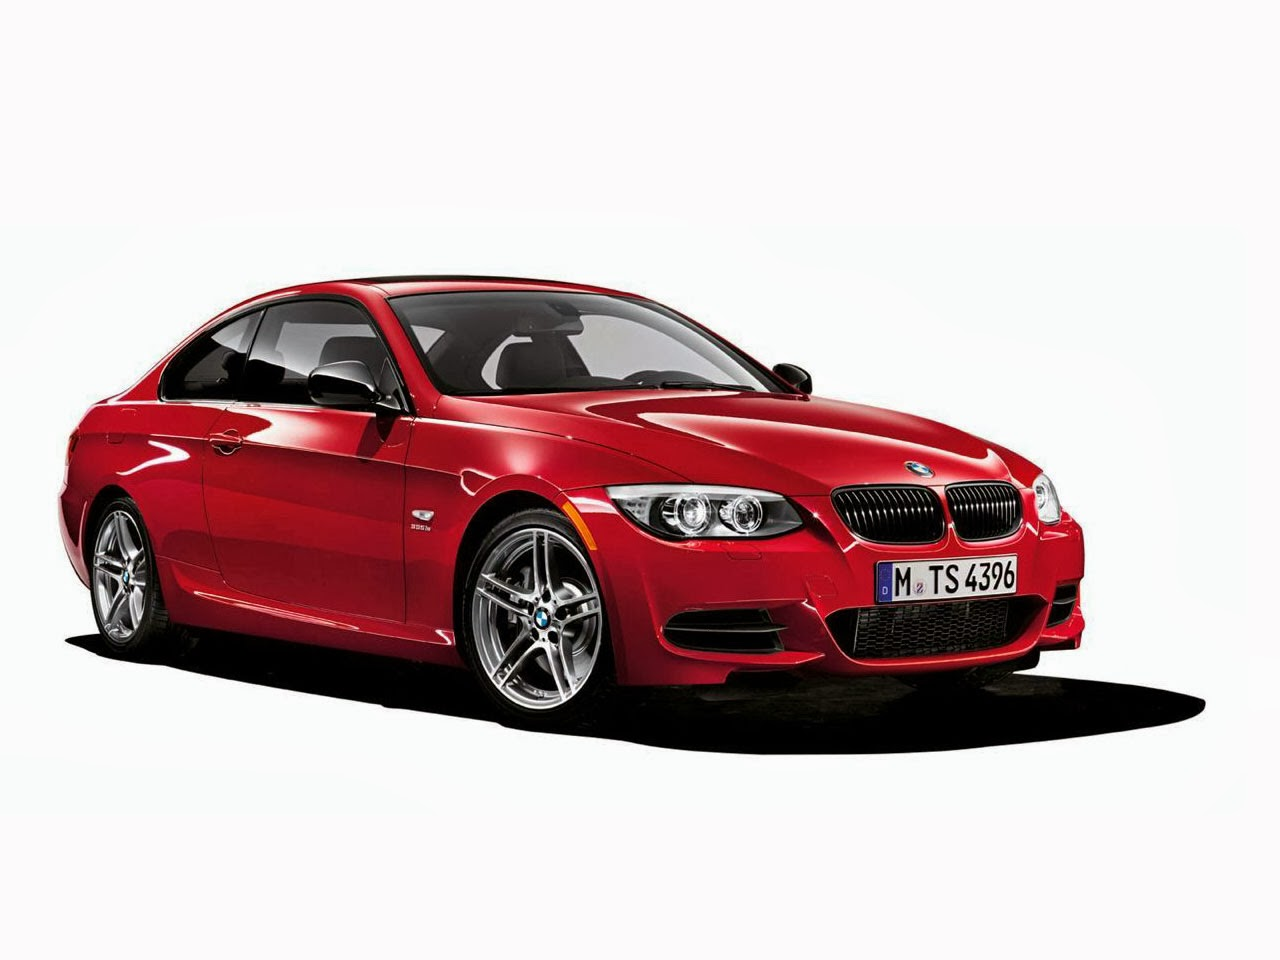 Cars Mbok Dewor Red Bmw Cars